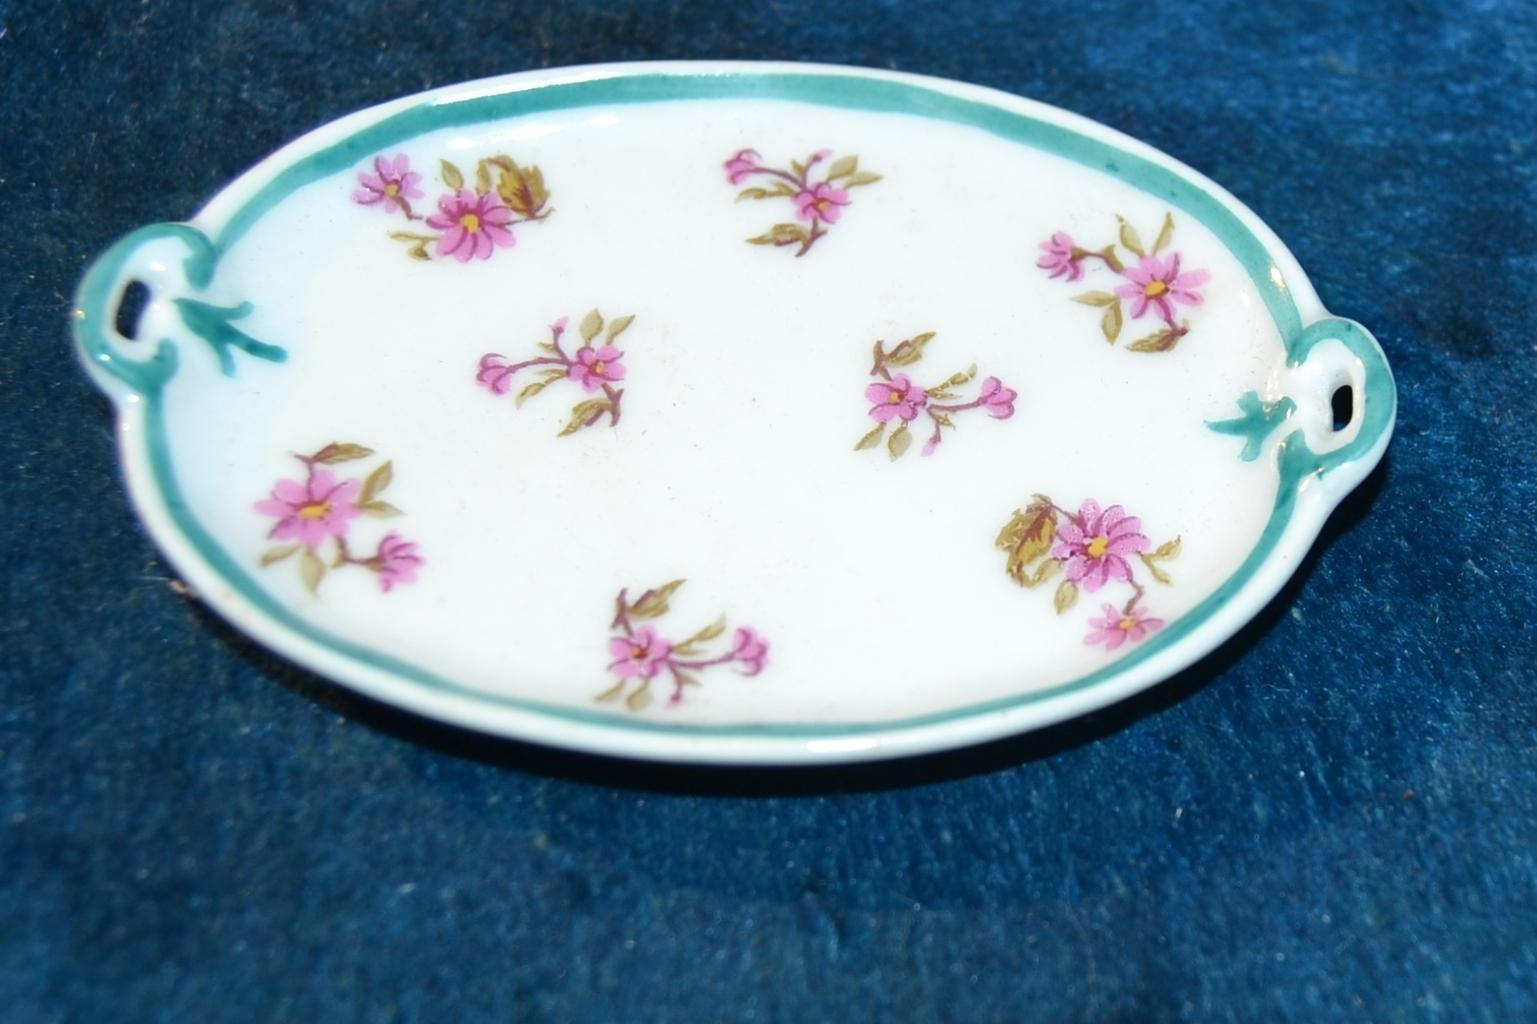 French little tray from Limoges